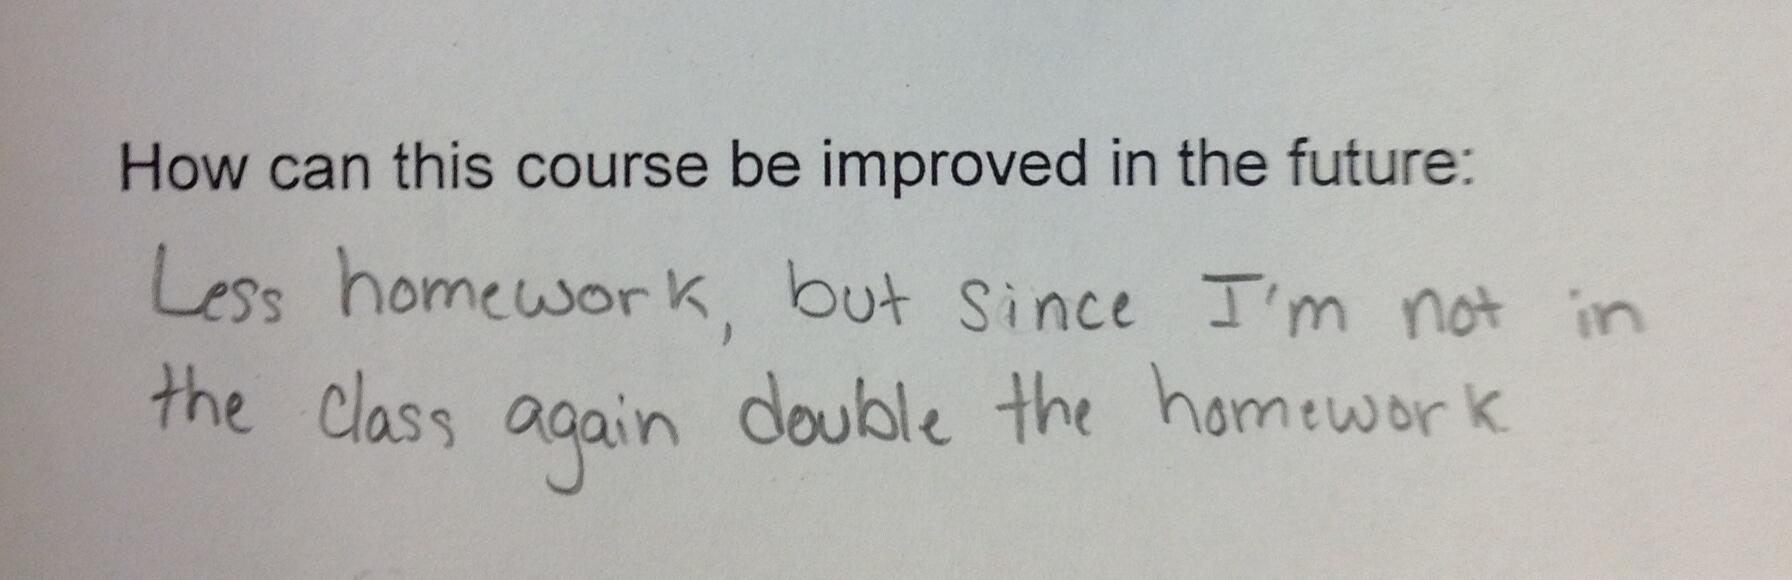 Twitter / Plong42: Best class evaluation comment ...